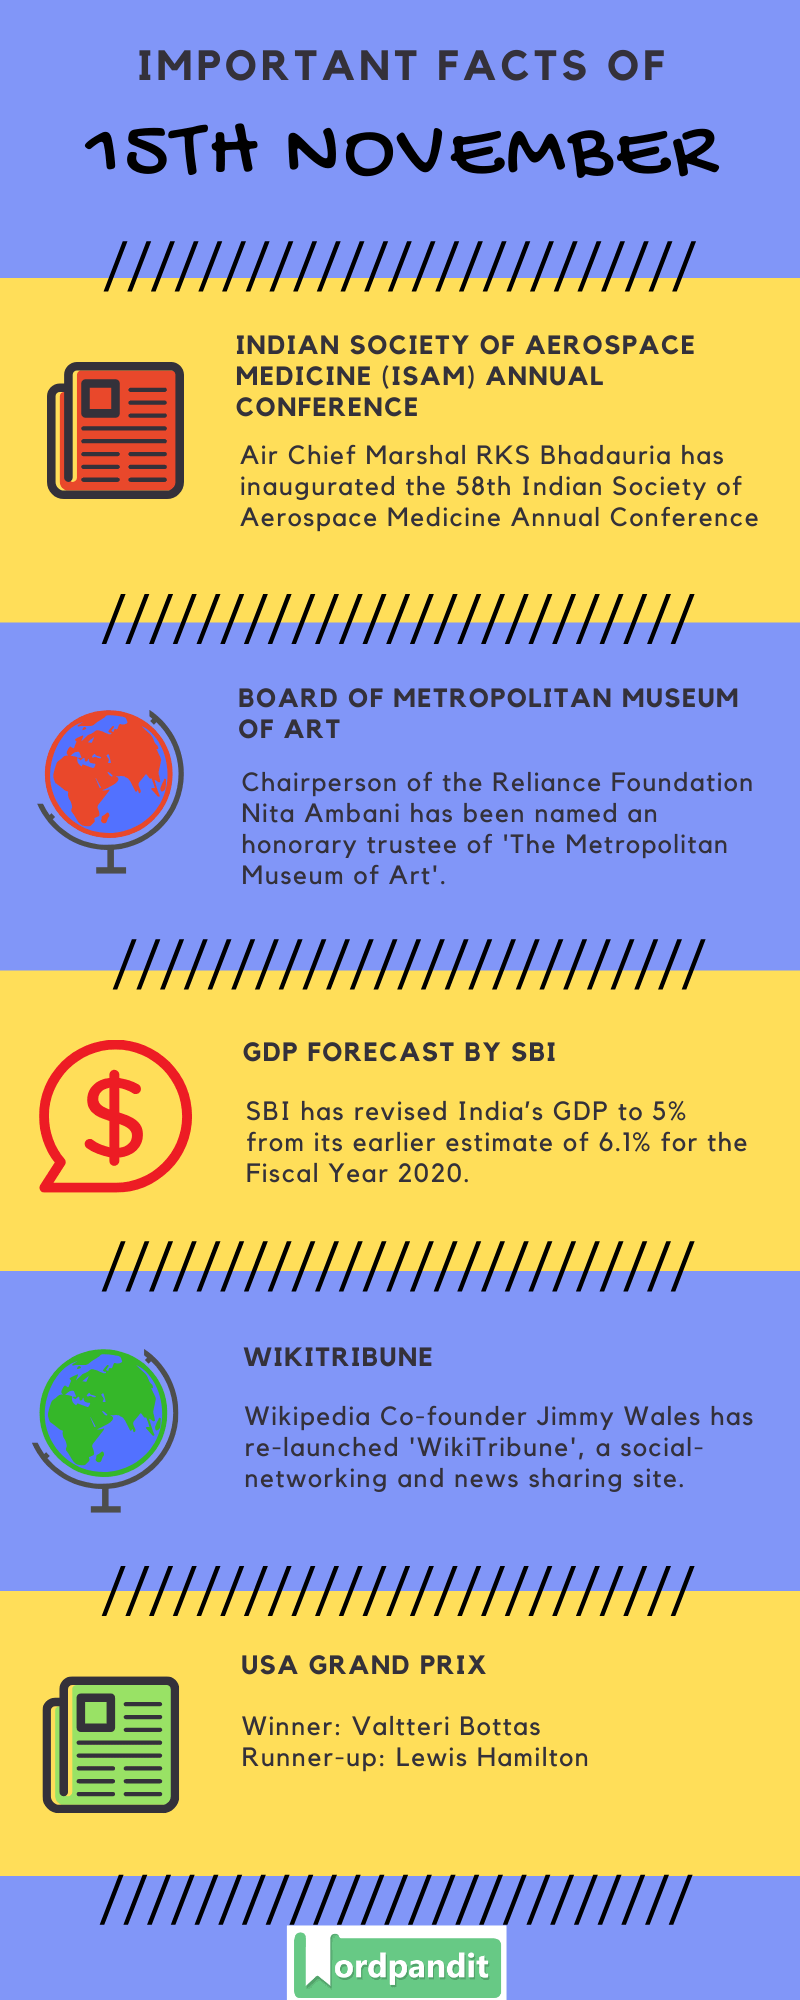 Daily Current Affairs 15 November 2019 Current Affairs Quiz 15 November 2019 Current Affairs Infographic